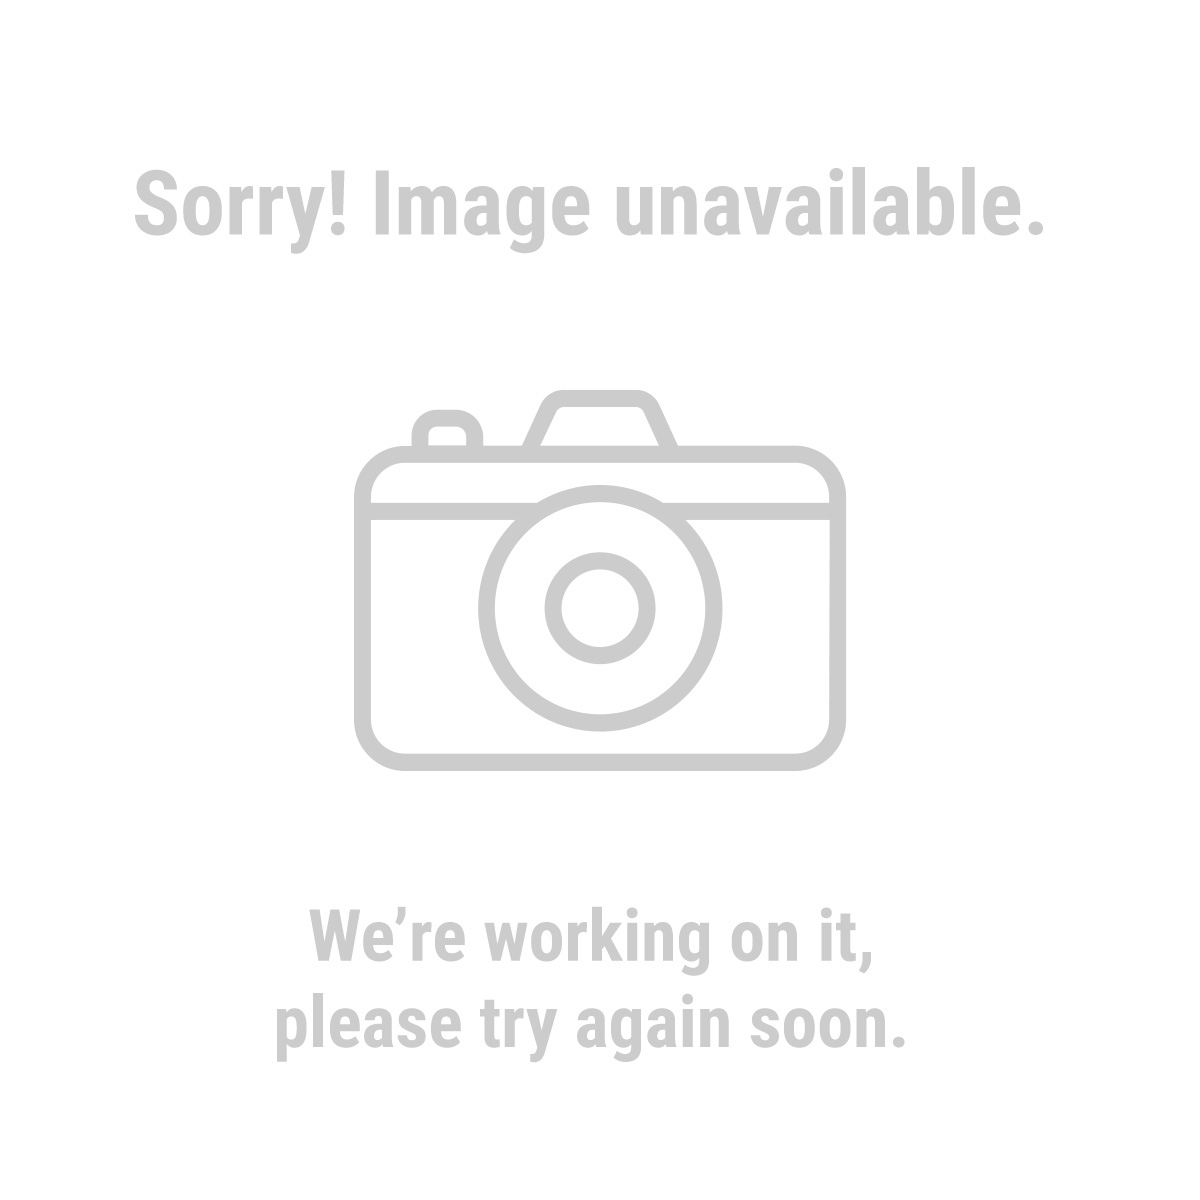 U.S. General Pro 62662 56 in. 8 Drawer Glossy Red Roller Cabinet Top Chest